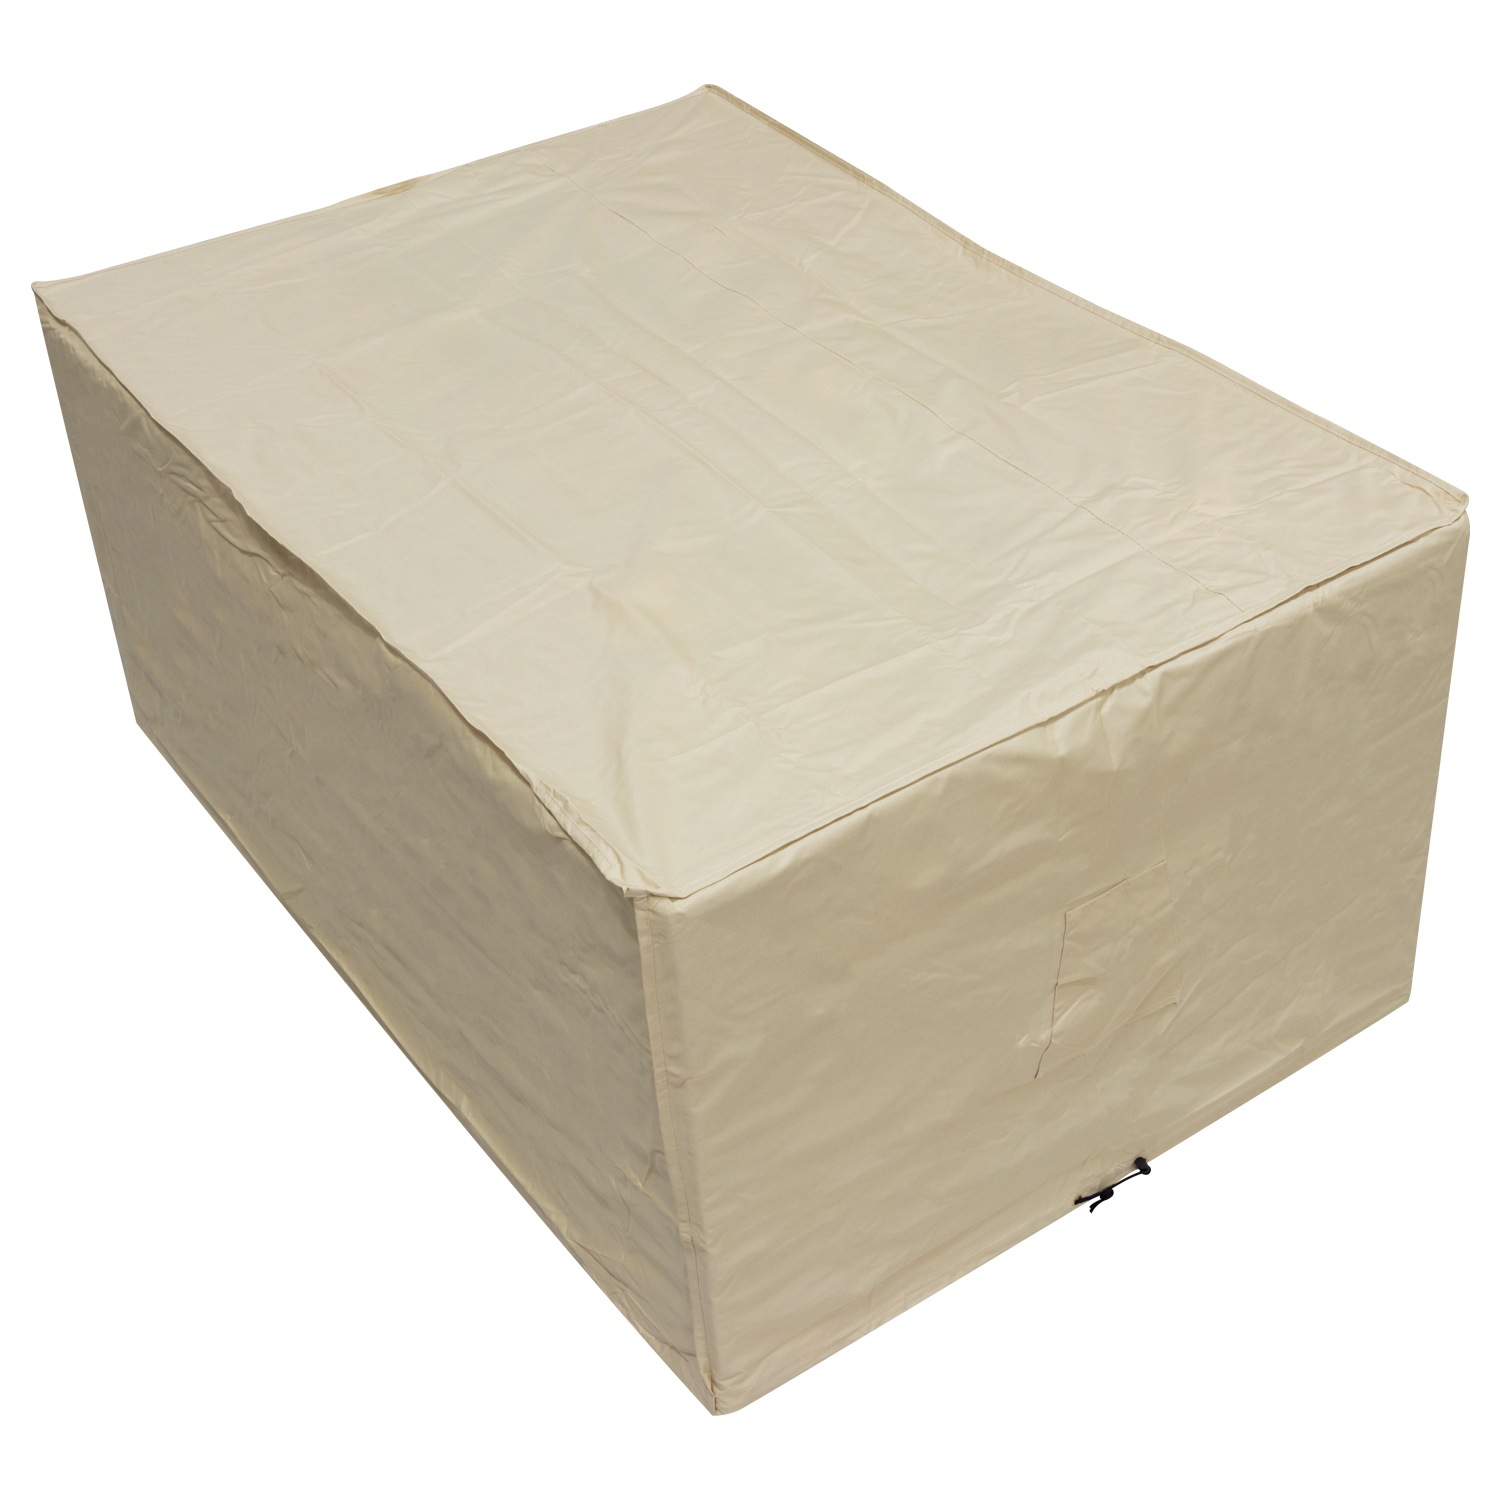 Oxbridge small table cover sand covers outdoor value for Oxbridge outdoor furniture covers